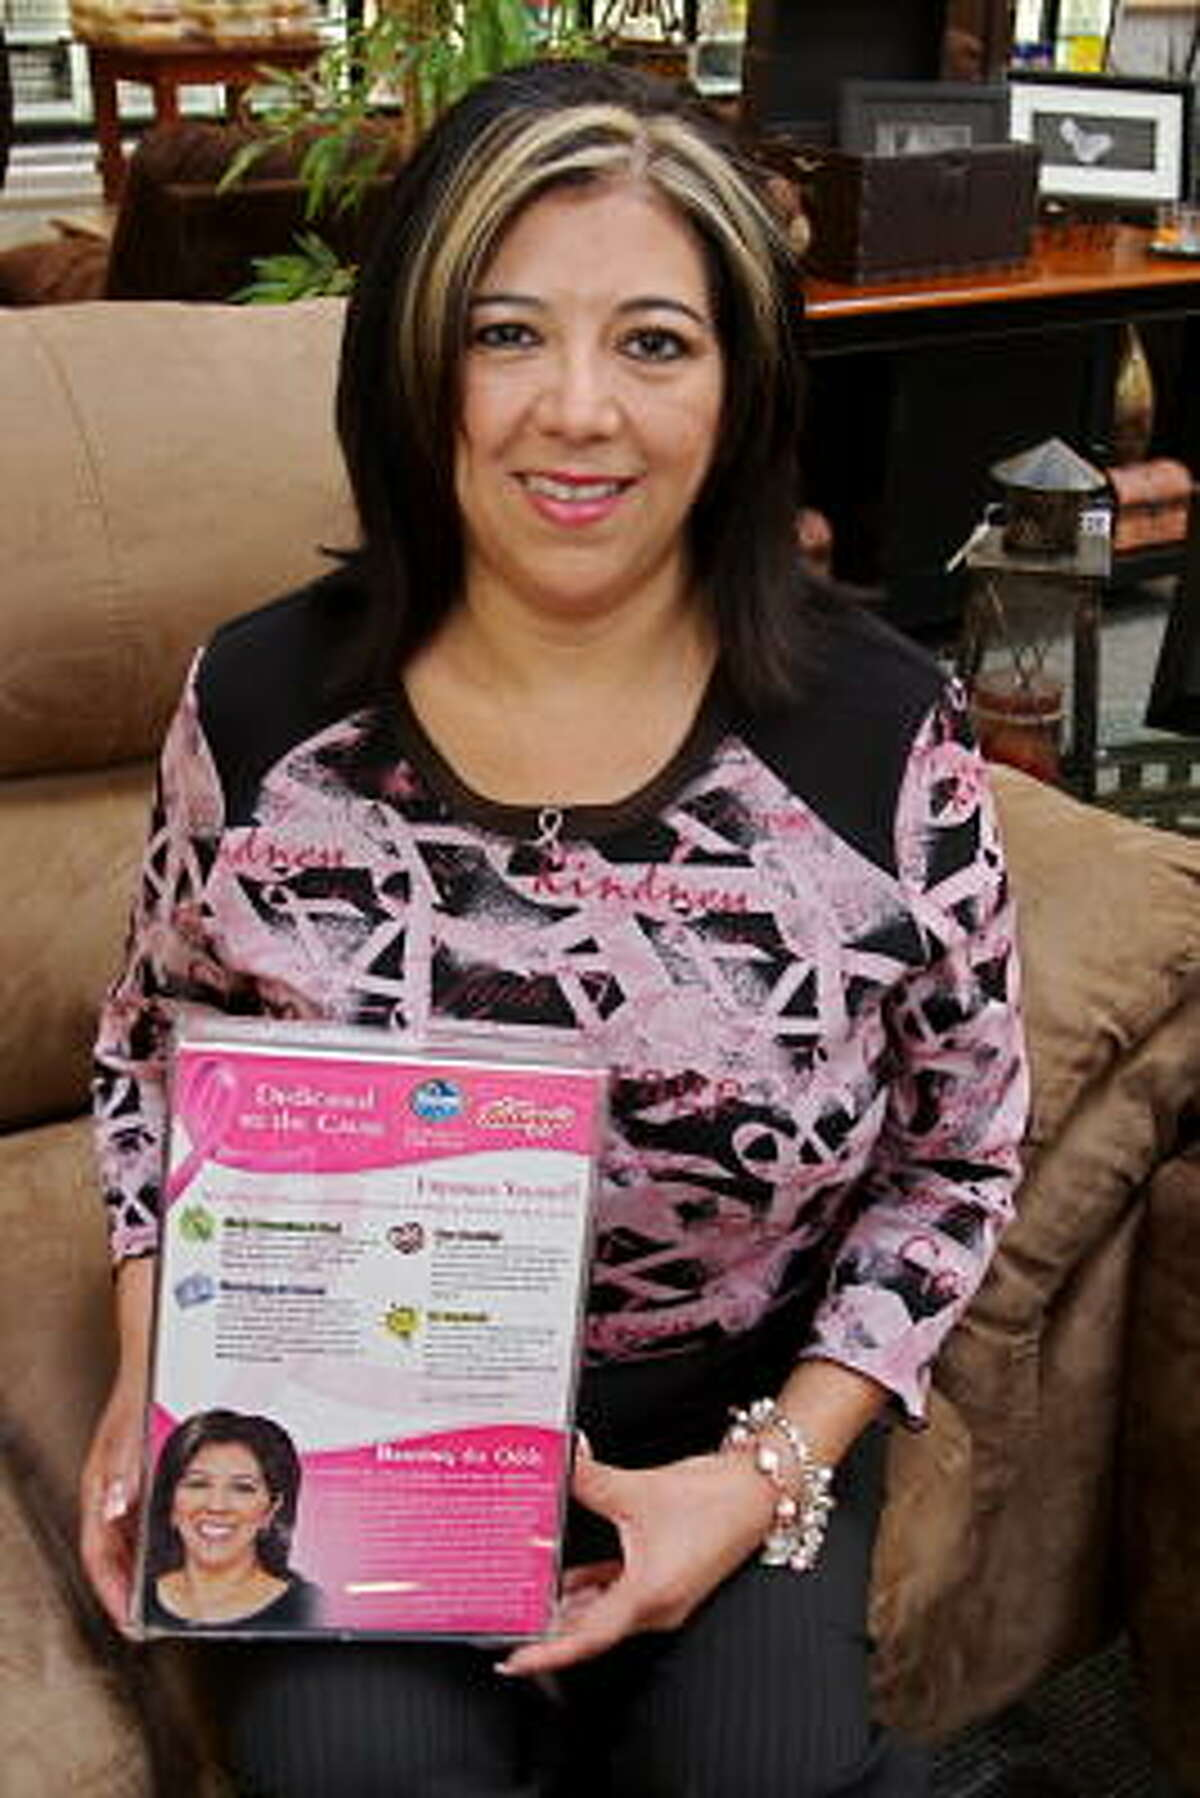 Cecilia Sarabia, manager at the Kroger Marketplace in Richmond, is a breast cancer survivor. Sarabia holds a Special K cereal box where her photo appears on the back of the box.